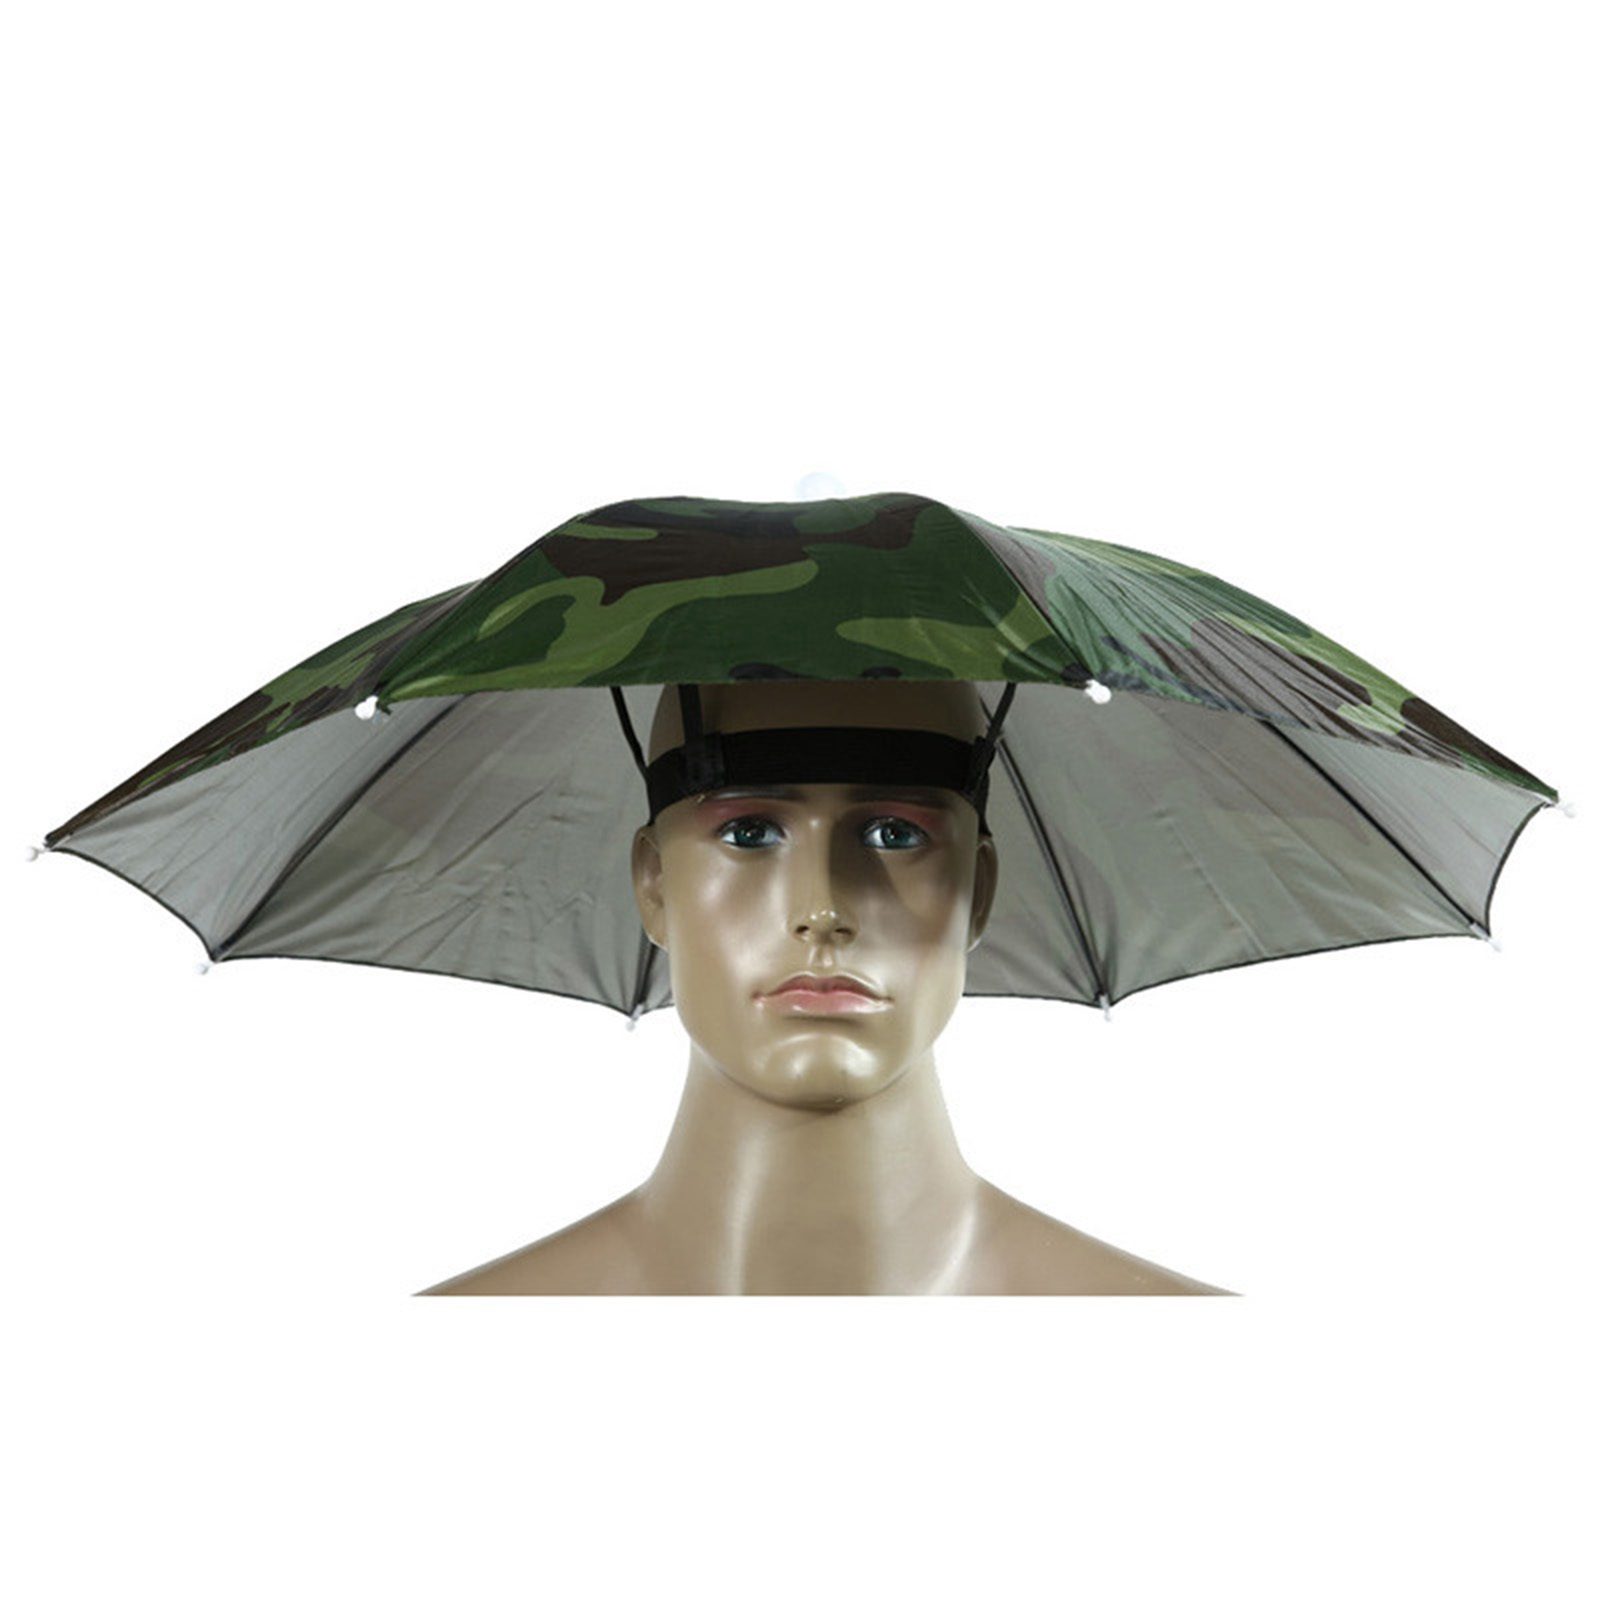 Image 2 - Fishing Cap Outdoor Sport Umbrella Hat Hiking Camping Headwear Cap Head Hats Camouflage Foldable Sunscreen Shade Umbrella Hat-in Fishing Caps from Sports & Entertainment